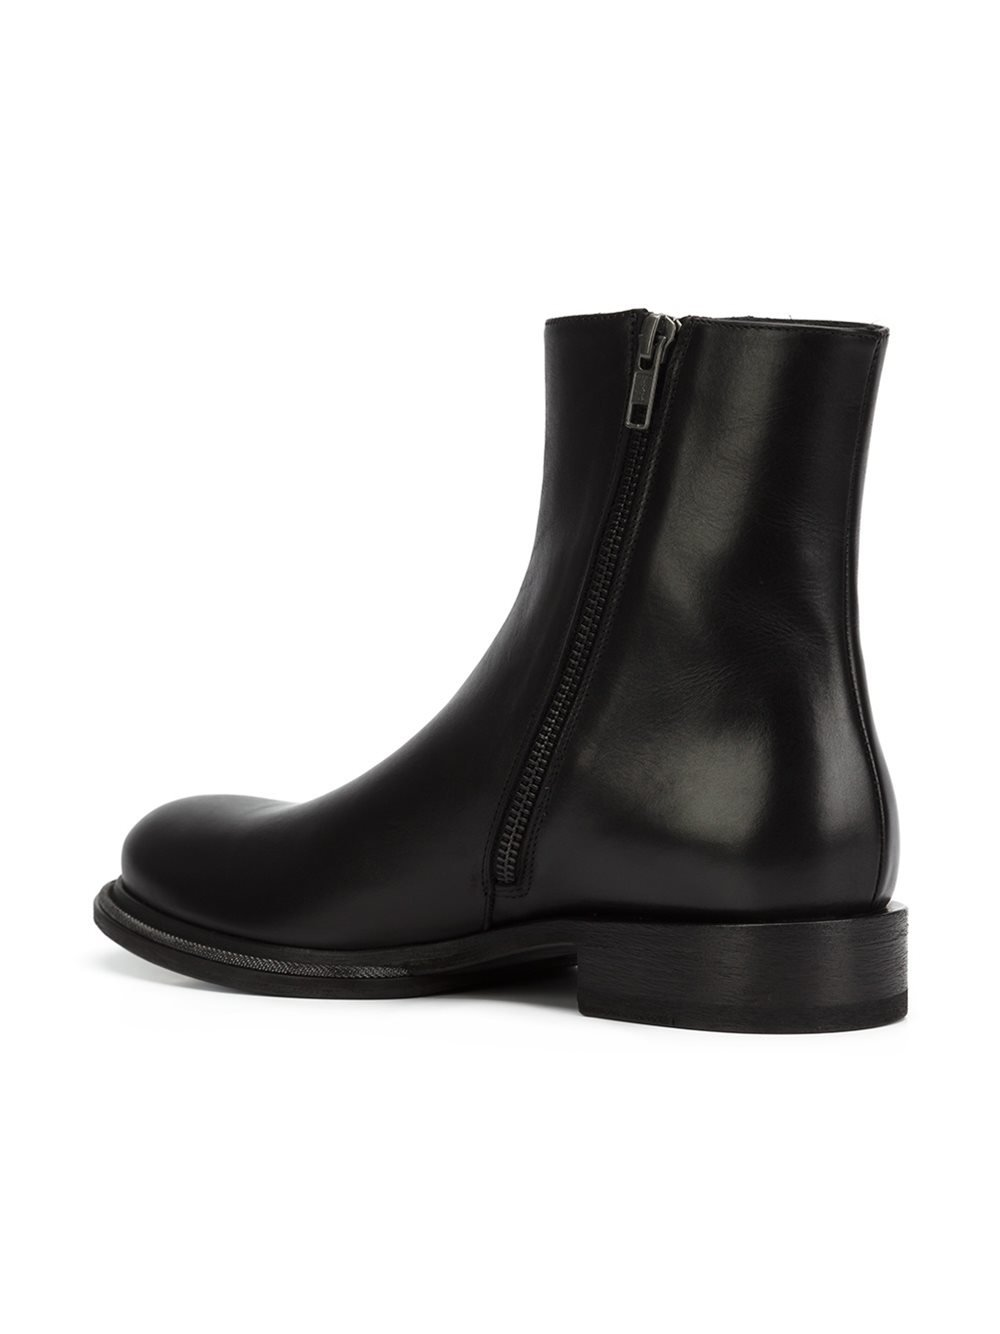 Ann Demeulemeester Leather Ankle Boots In Black Lyst